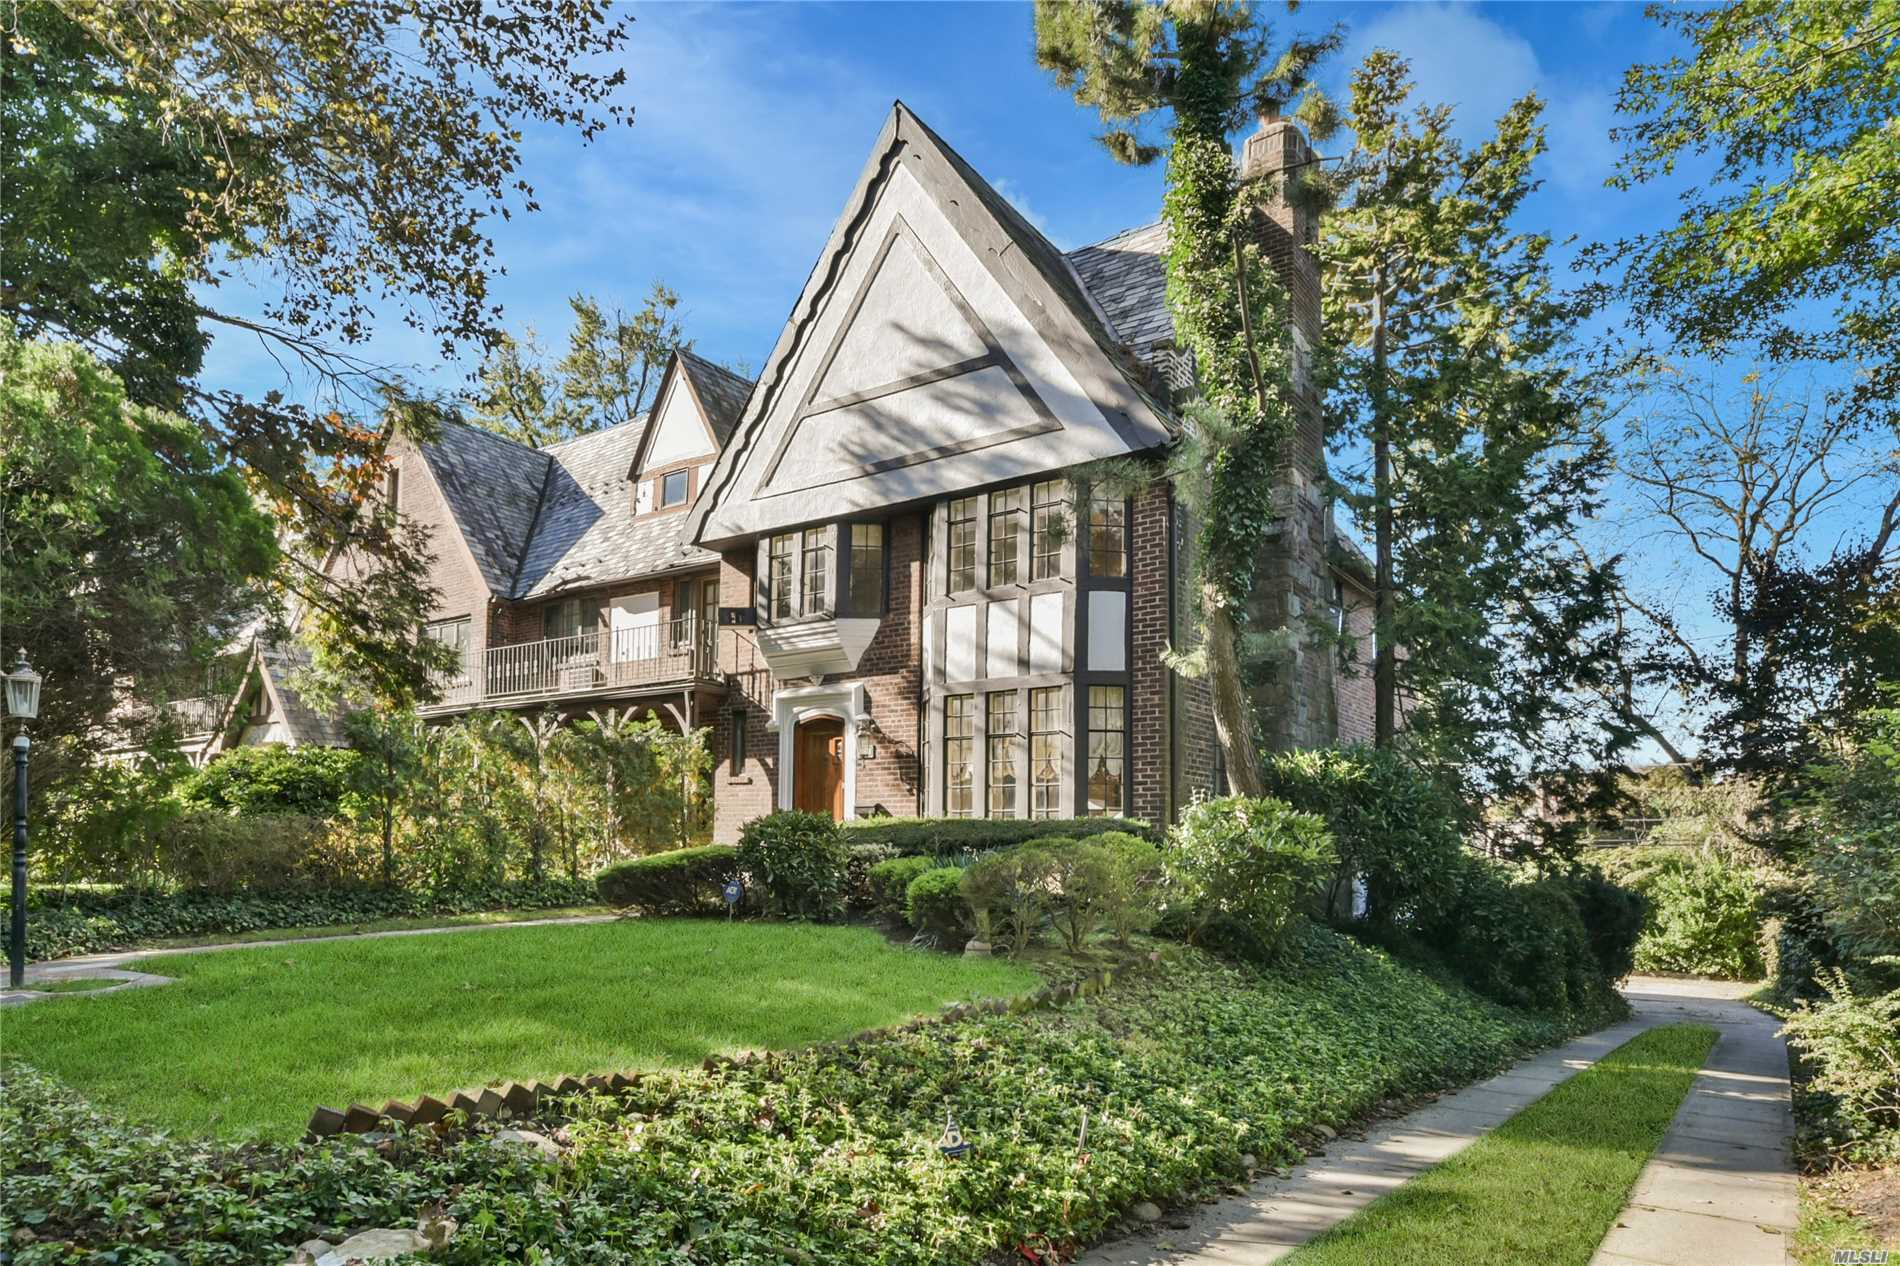 Unique, Gatsby Era, Custom Built, Corner Tudor Town-Home Built In & Around The Mansions Of Great Neck On One Of The Most Desirable Neighborhoods In The Usa ! Everything Is Custom From The Hand Laid Oak Pegged Floors To The One Of A Kind Art Deco Bathrooms ! The First Floor Layout Flows Like A Mansion. The Custom Wood Floors Accentuate The Dining Room. There Is A Custom Mirrored Living Room With A Marble Fireplace. 4 Bedrooms On The 2nd Floor W/ Ample Closet Space. Walk Out Basement !